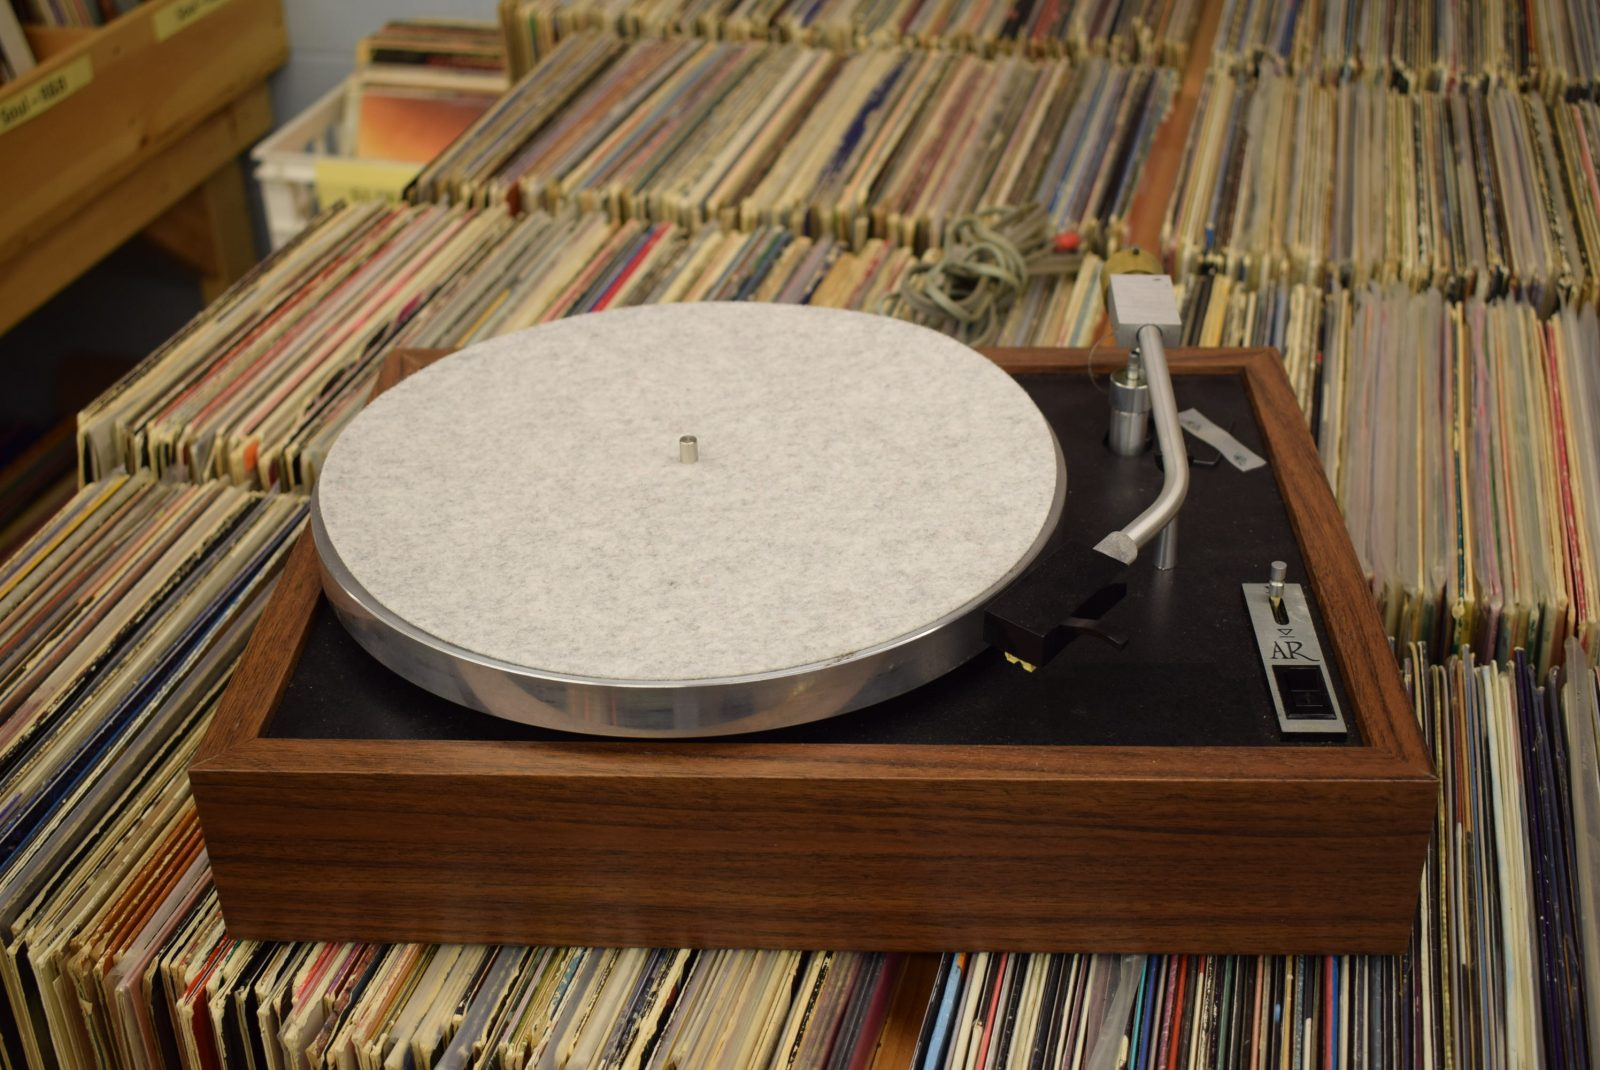 Acoustic Research - AR - Turntable - Model: XB